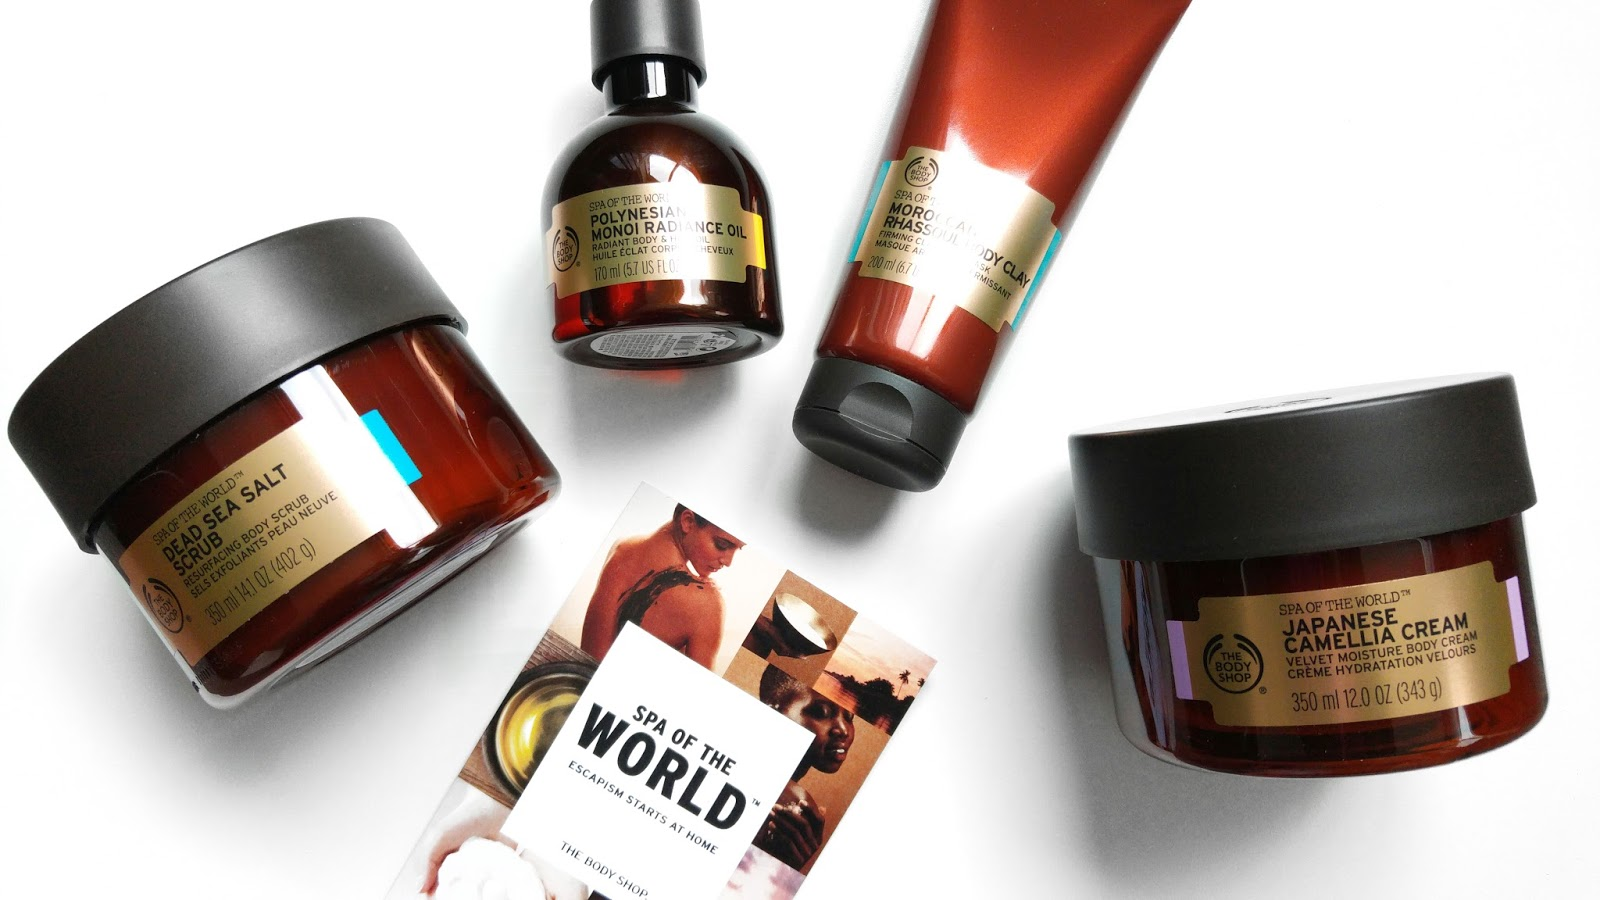 The Body Shop Spa of The World Review, The Body Shop Review, The Body Shop Spa Range, The Body Shop Dead Sea Salt Scrub, The Body Shop Polynesian Monoi Radiance Oil, The Body Shop Moroccan Rhassoul Body Clay, The Body Shop Japanese Camella Cream